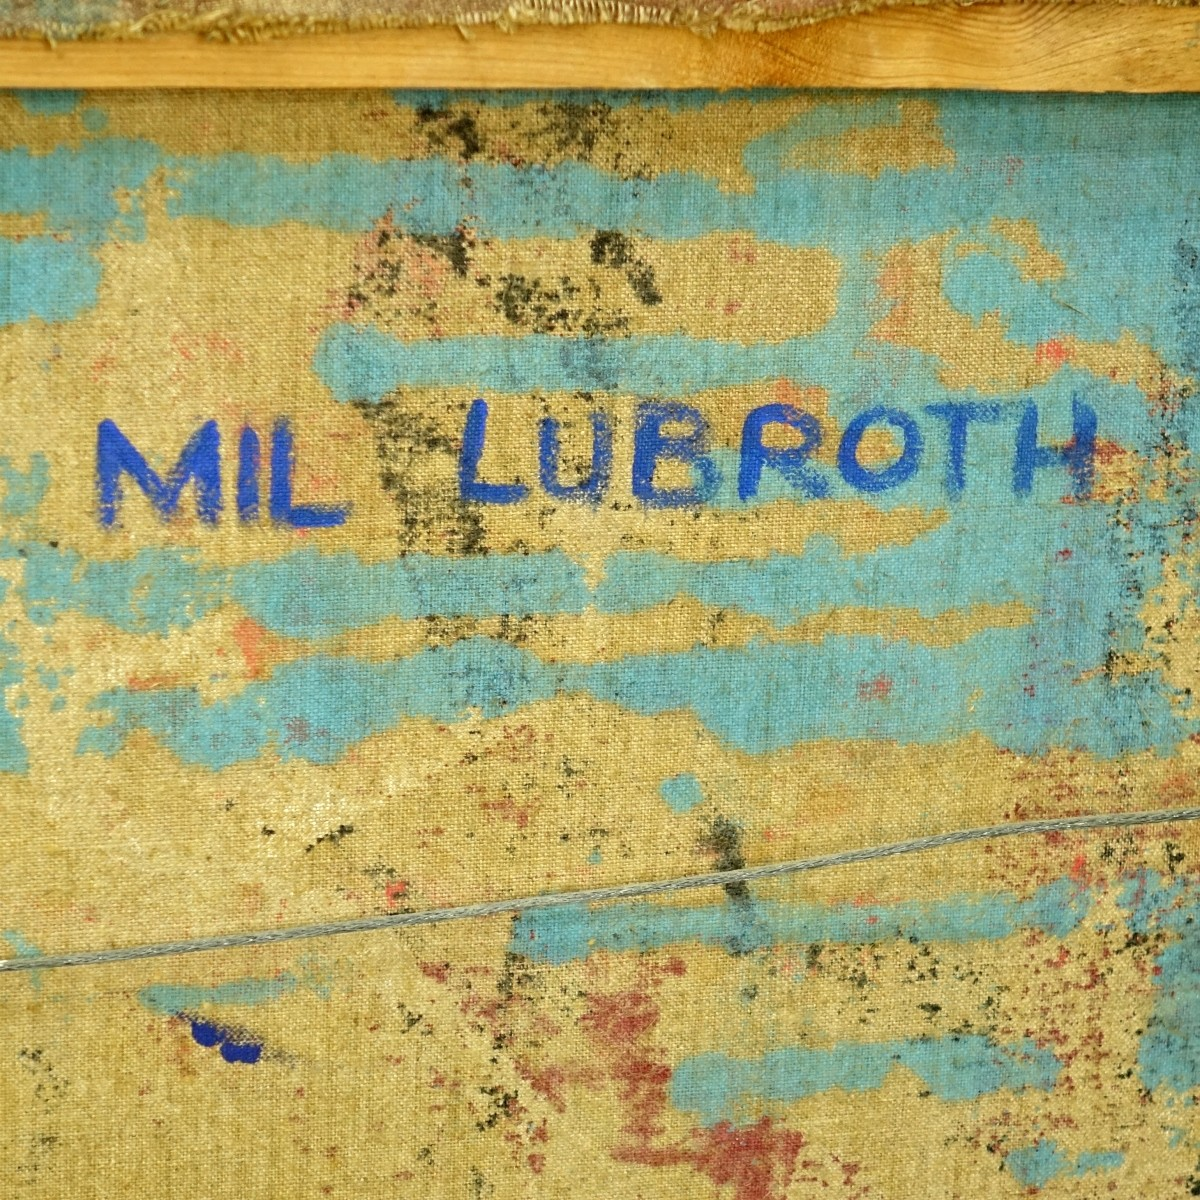 Mil Lubroth Oil on Canvas